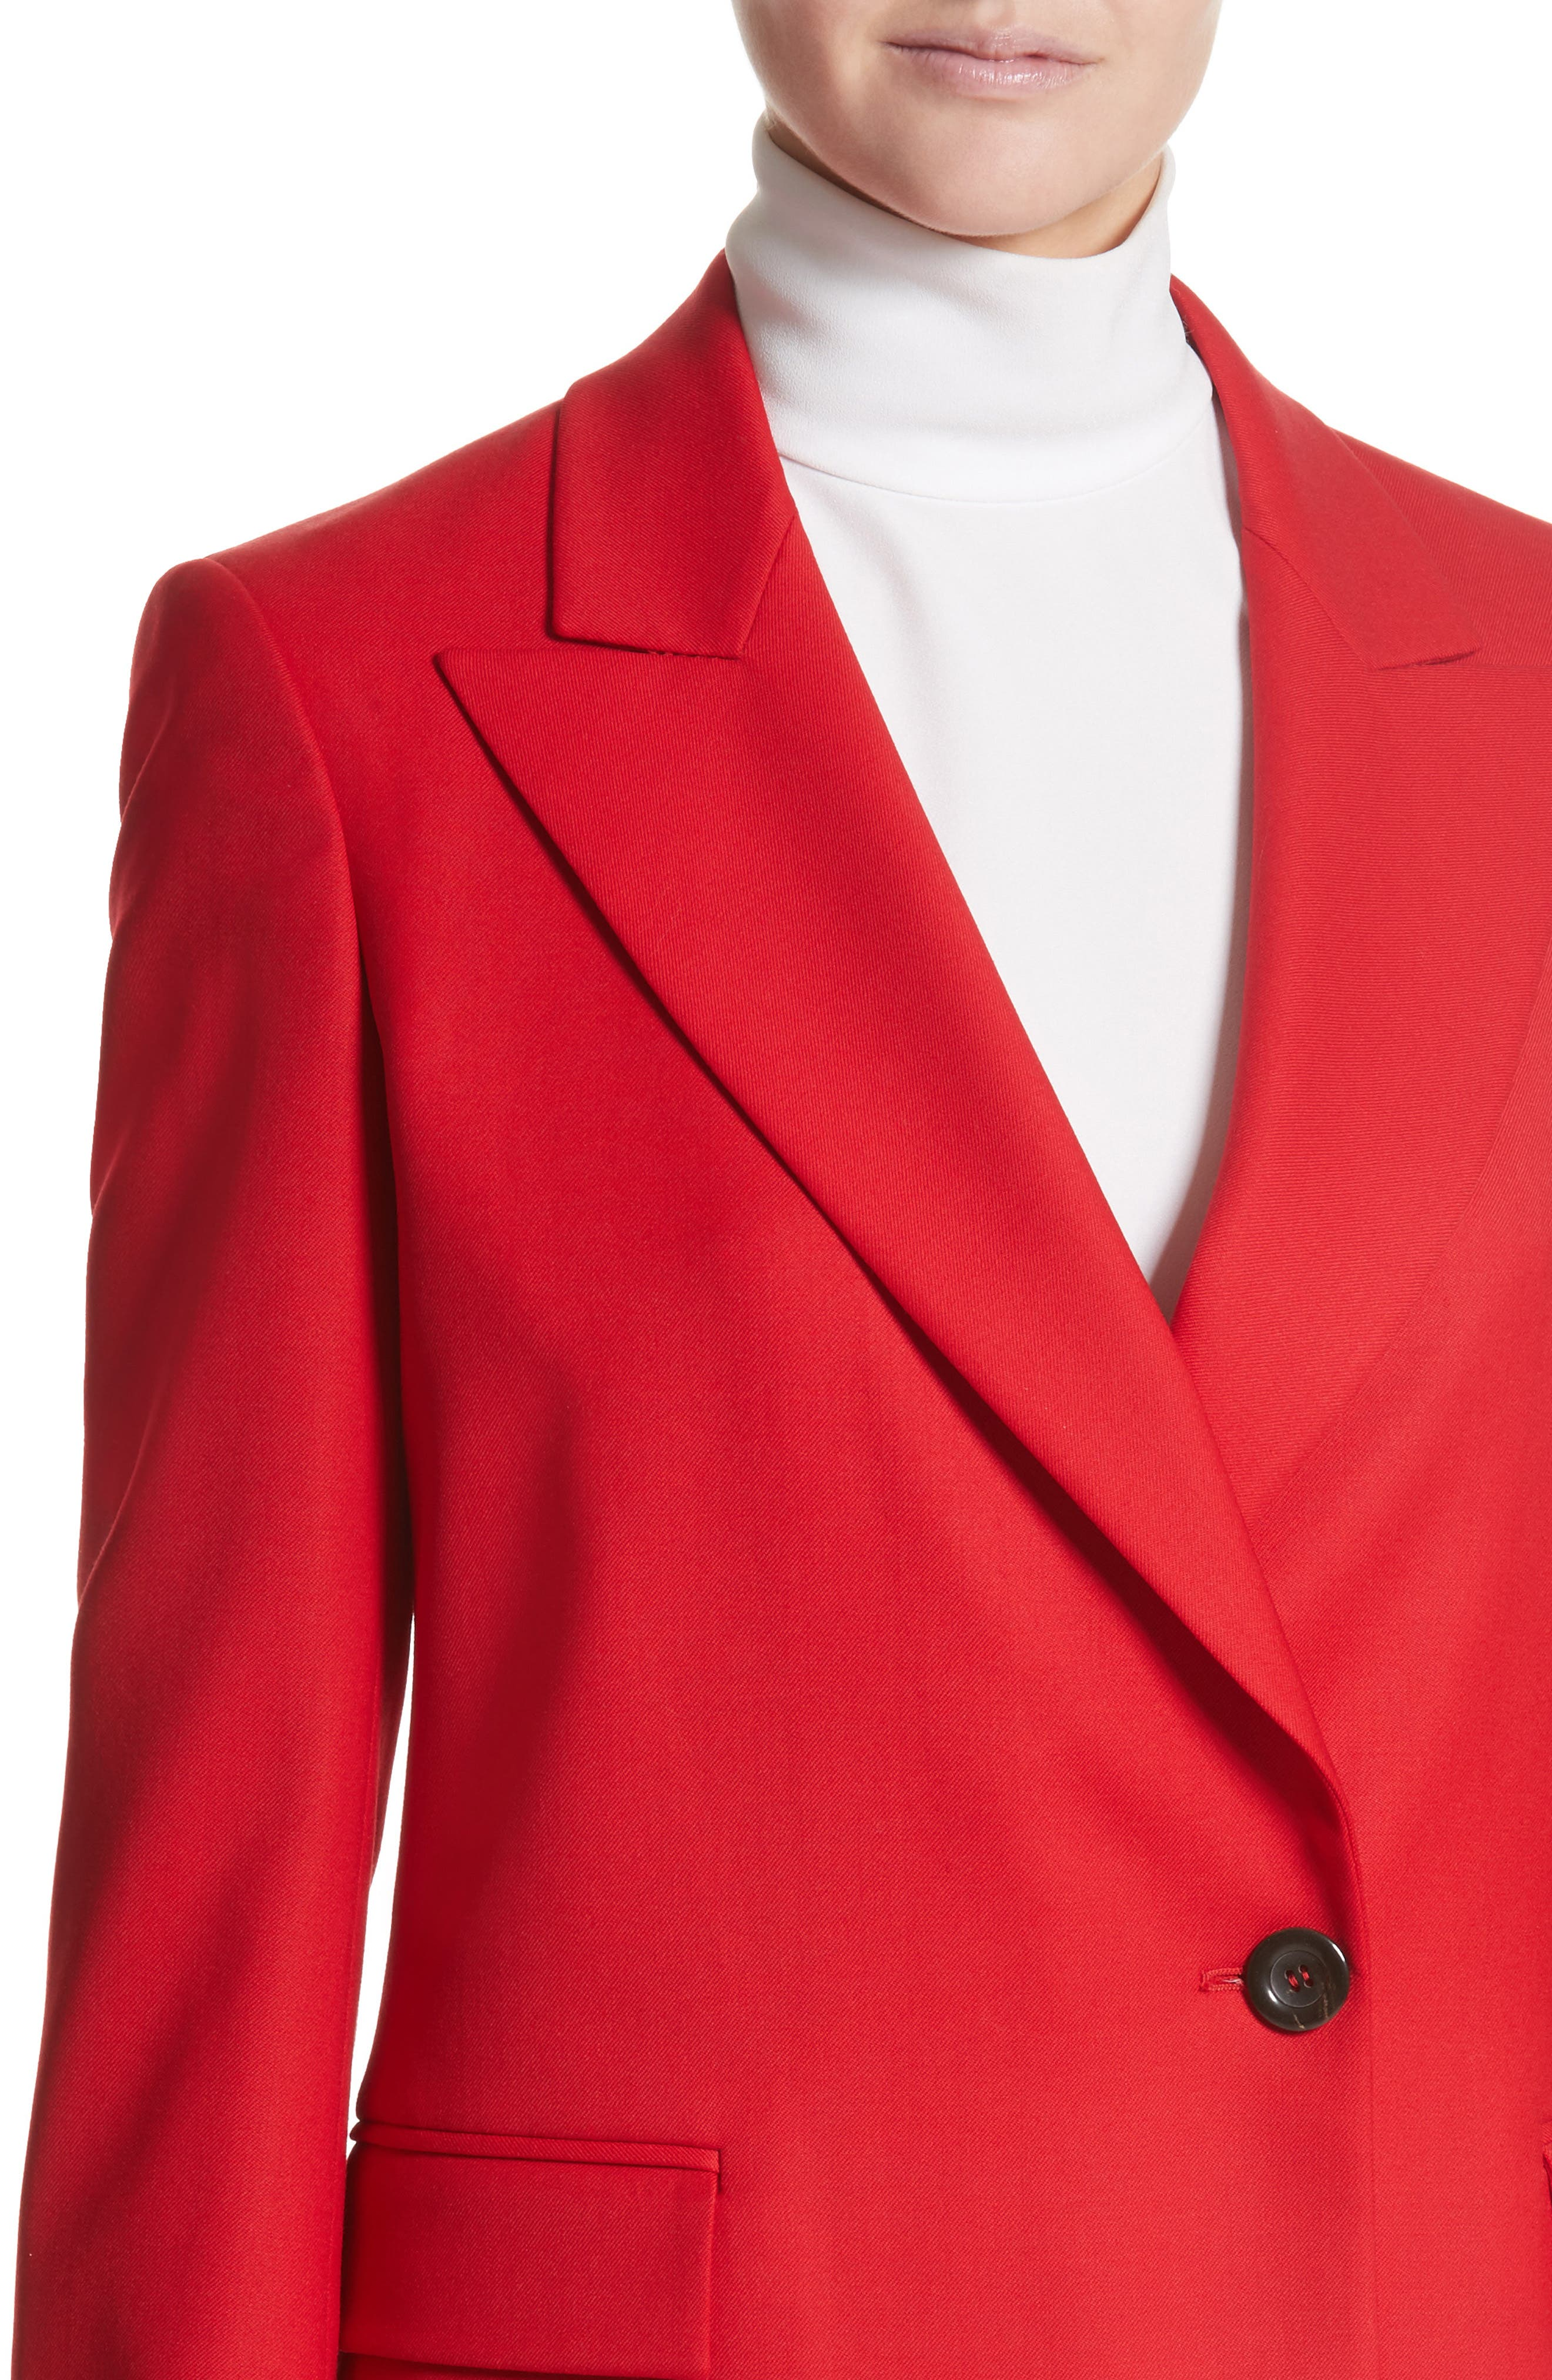 Stretch Wool Blazer,                             Alternate thumbnail 4, color,                             650